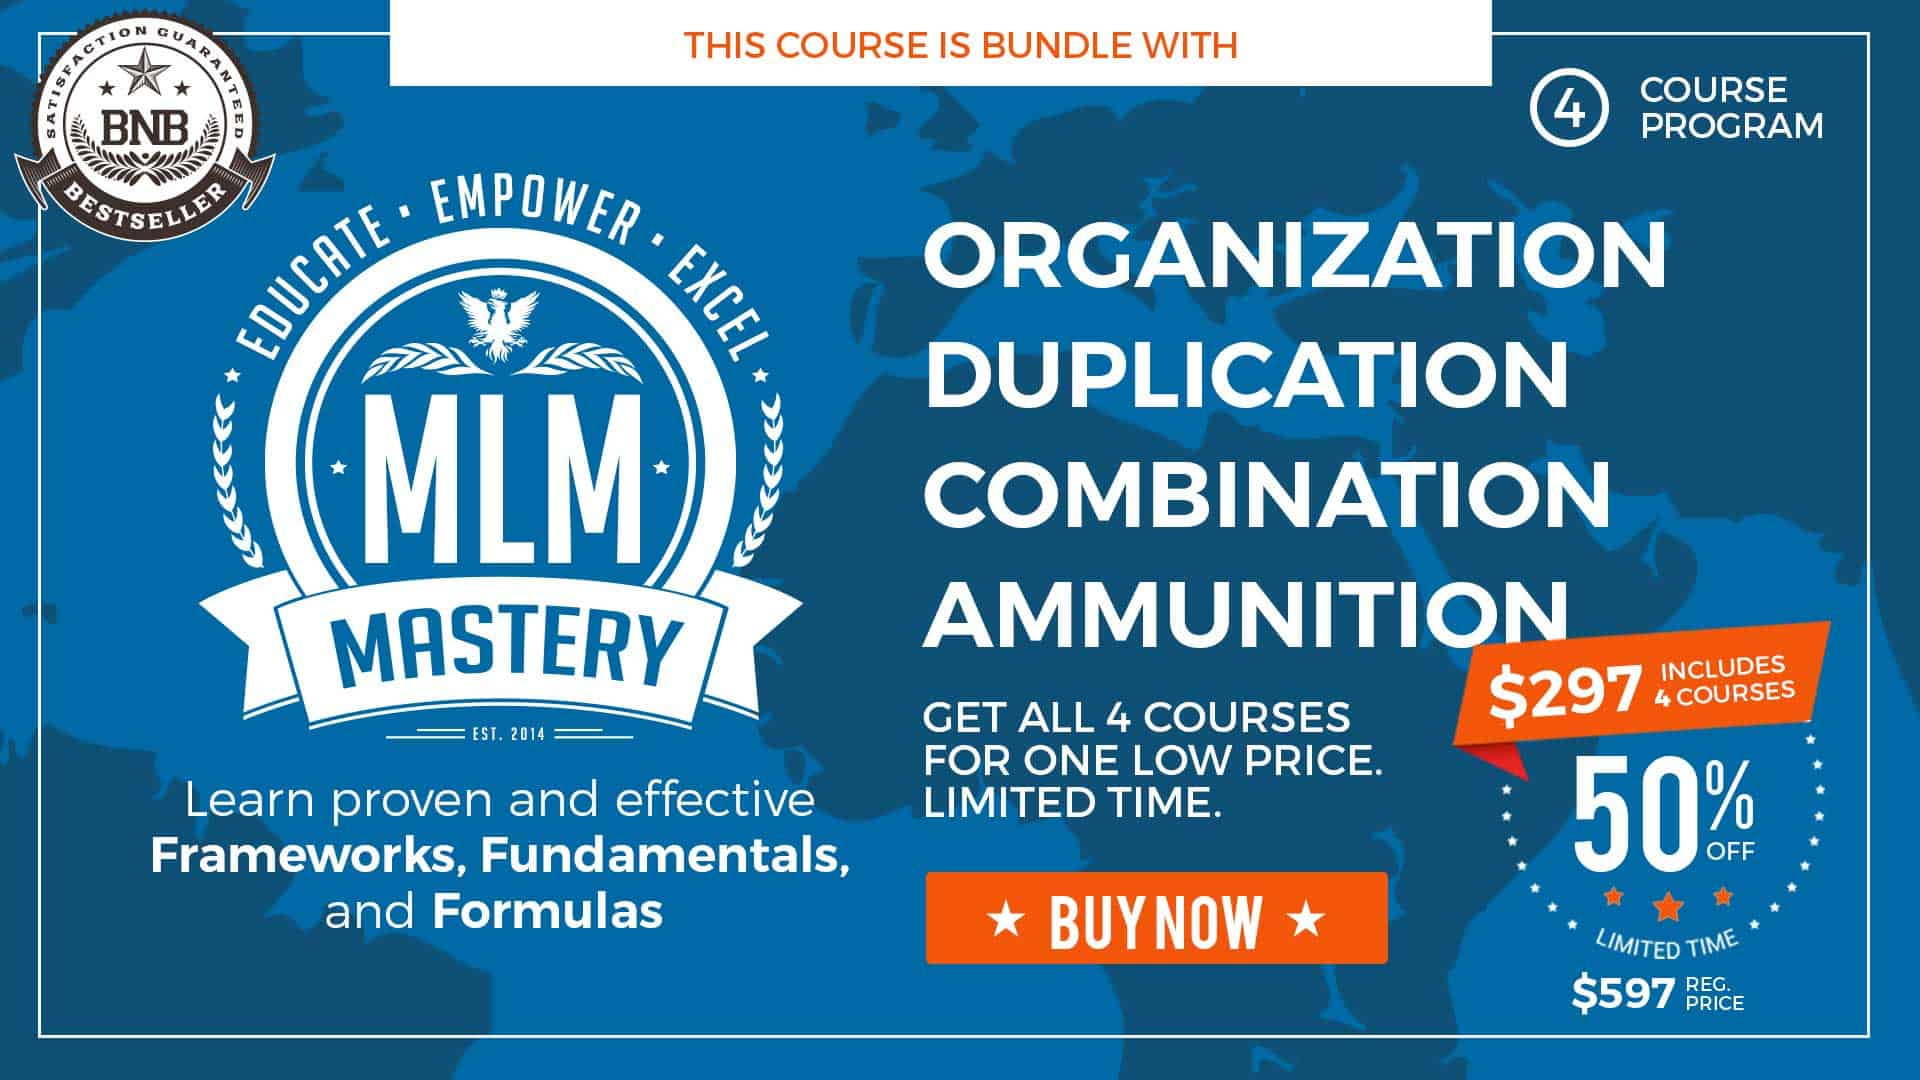 This course is bundled with MLM Mastery.